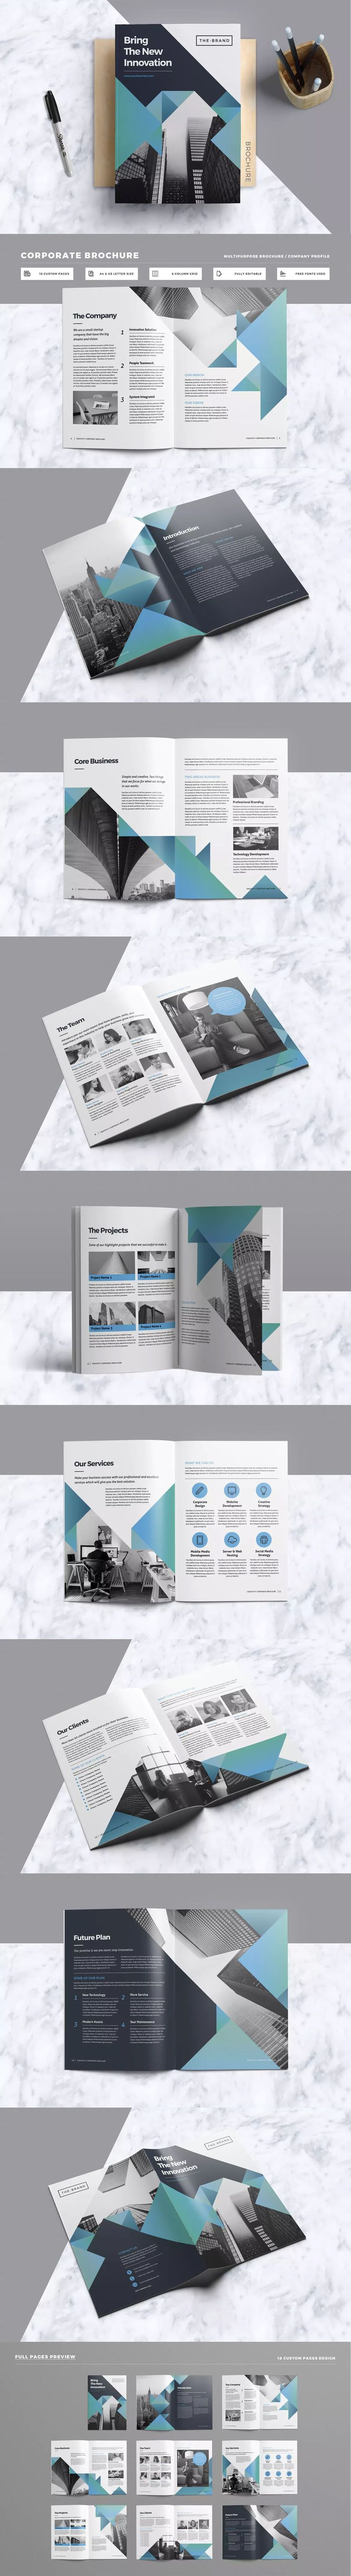 how to format a friendly letter%0A Brochure Template InDesign INDD  A   u     US Letter Size   modernhomedesignlayout